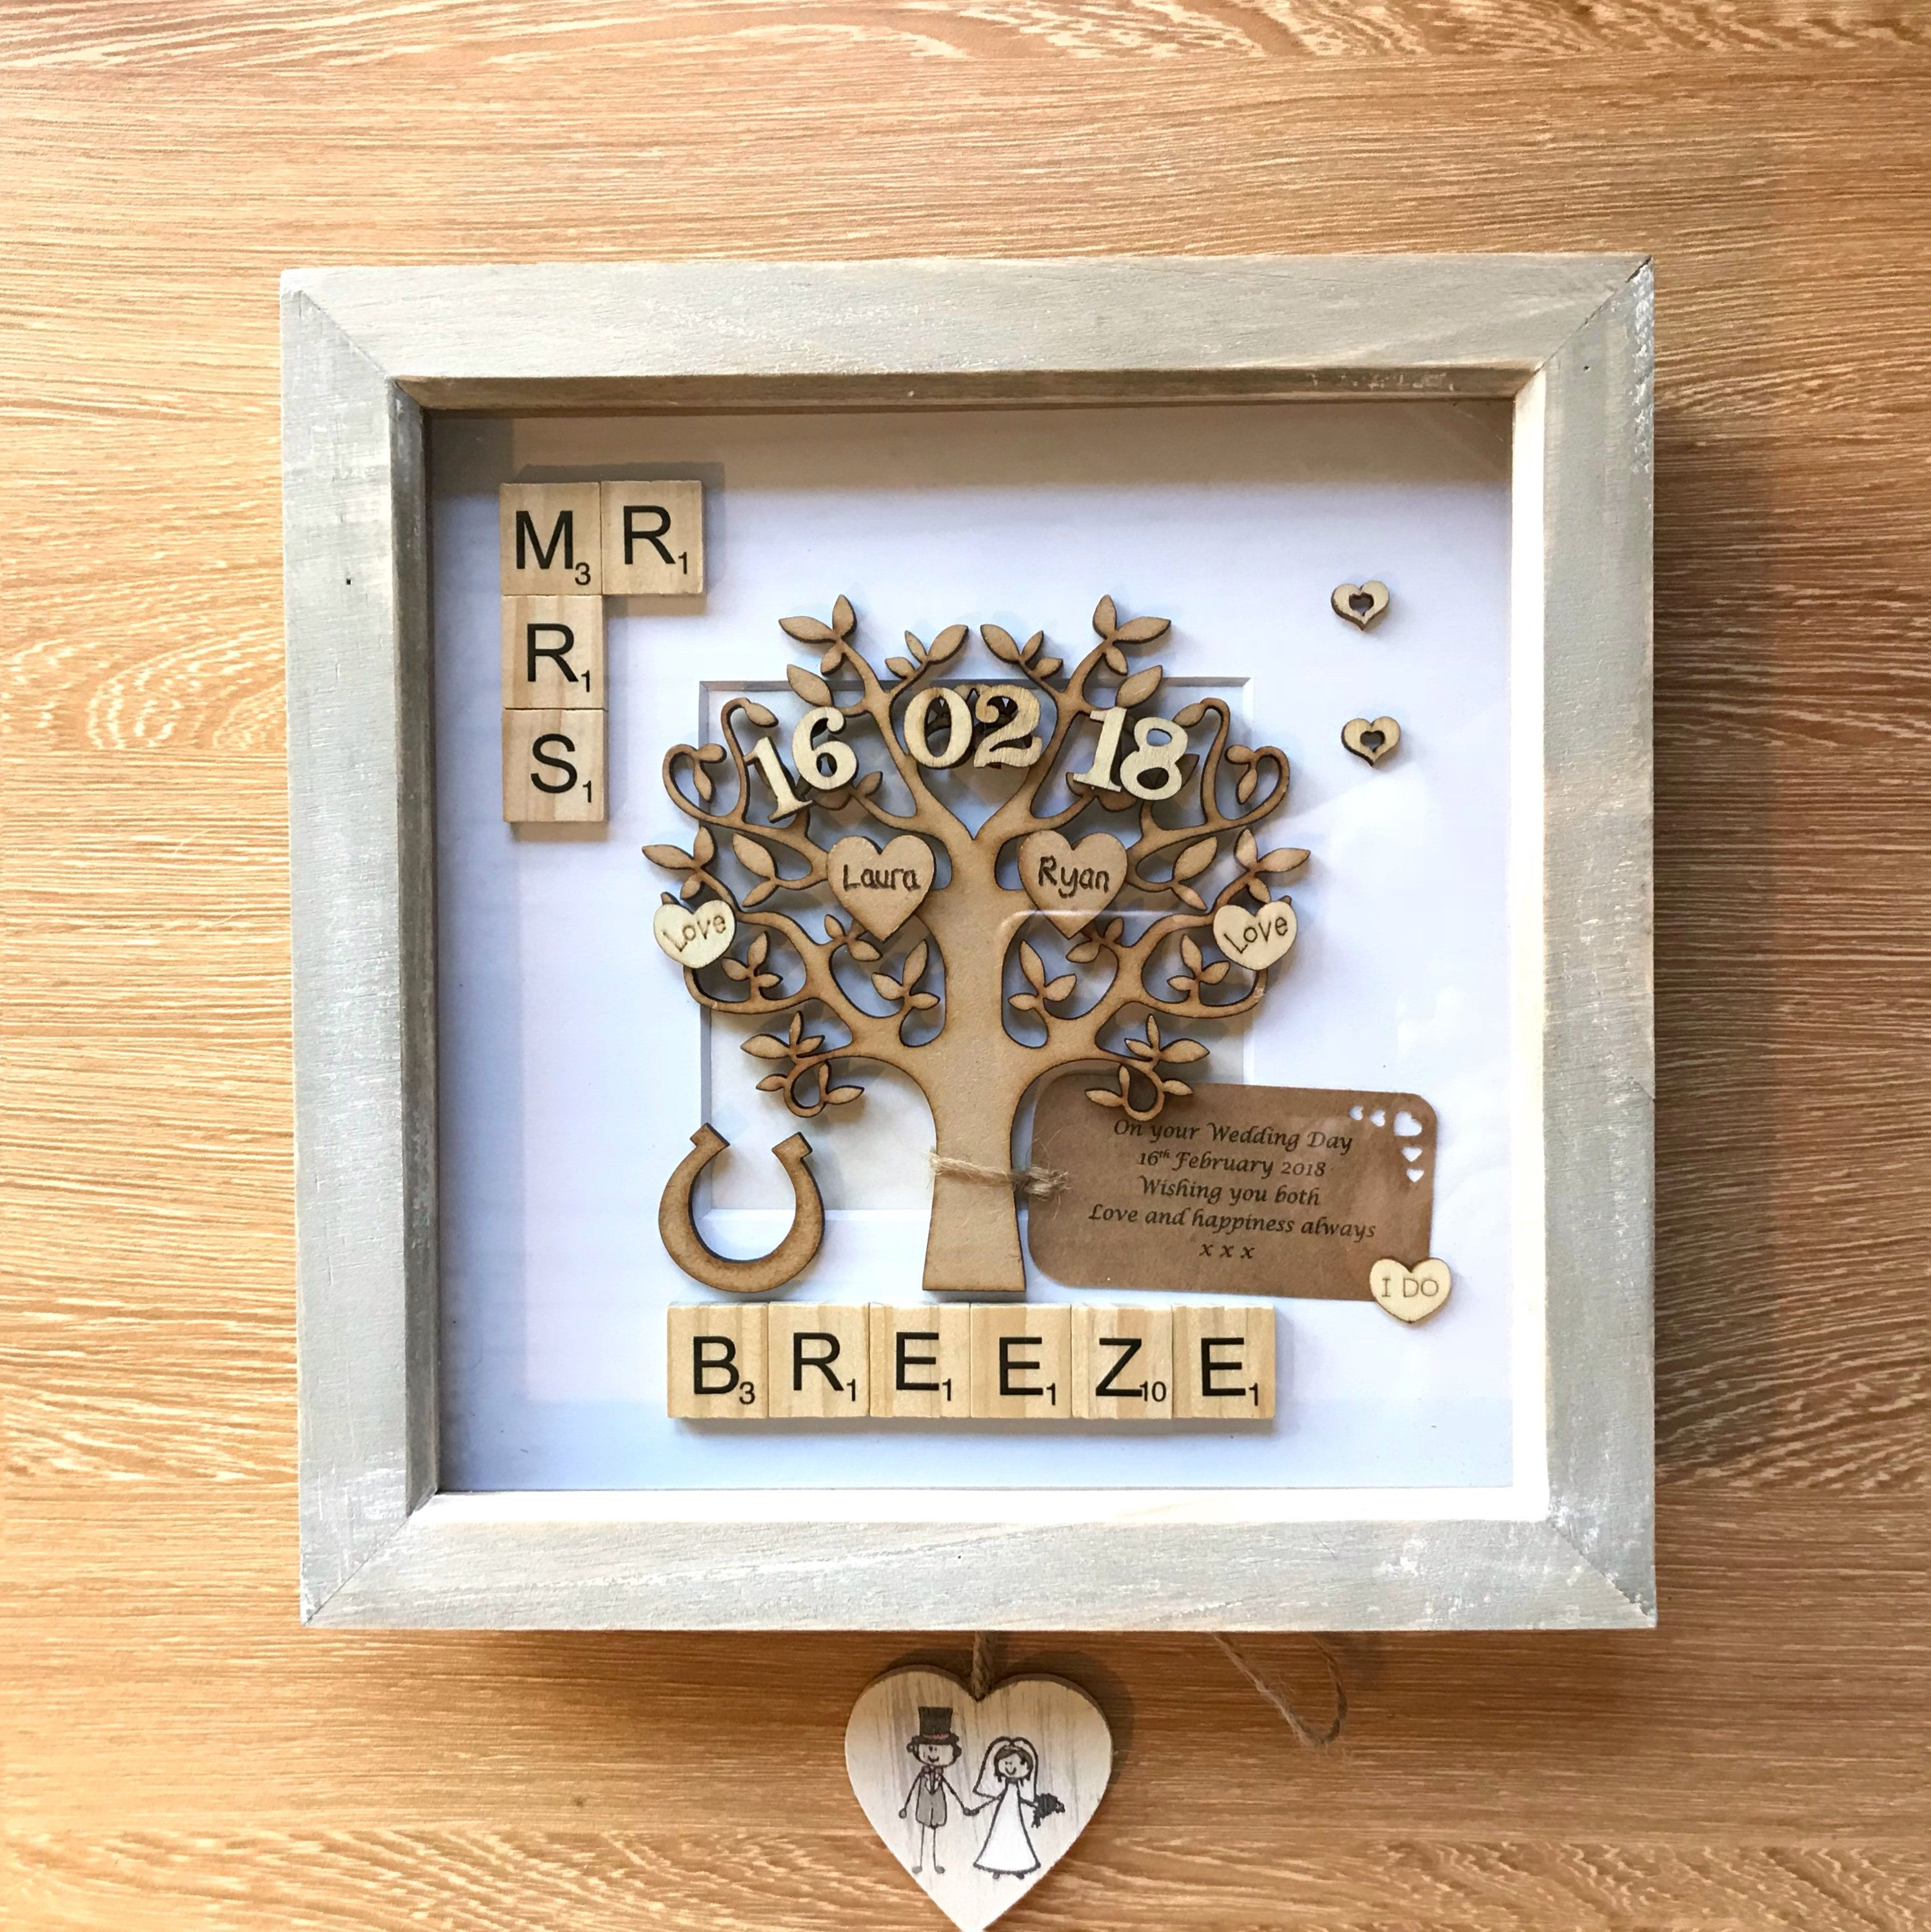 Wedding Gift Unique Wedding Gift For Couples Rustic Frame Engraved Names Mr Mrs Wedding Anni Wedding Gifts Unique Wedding Gifts Wedding Gifts For Couples